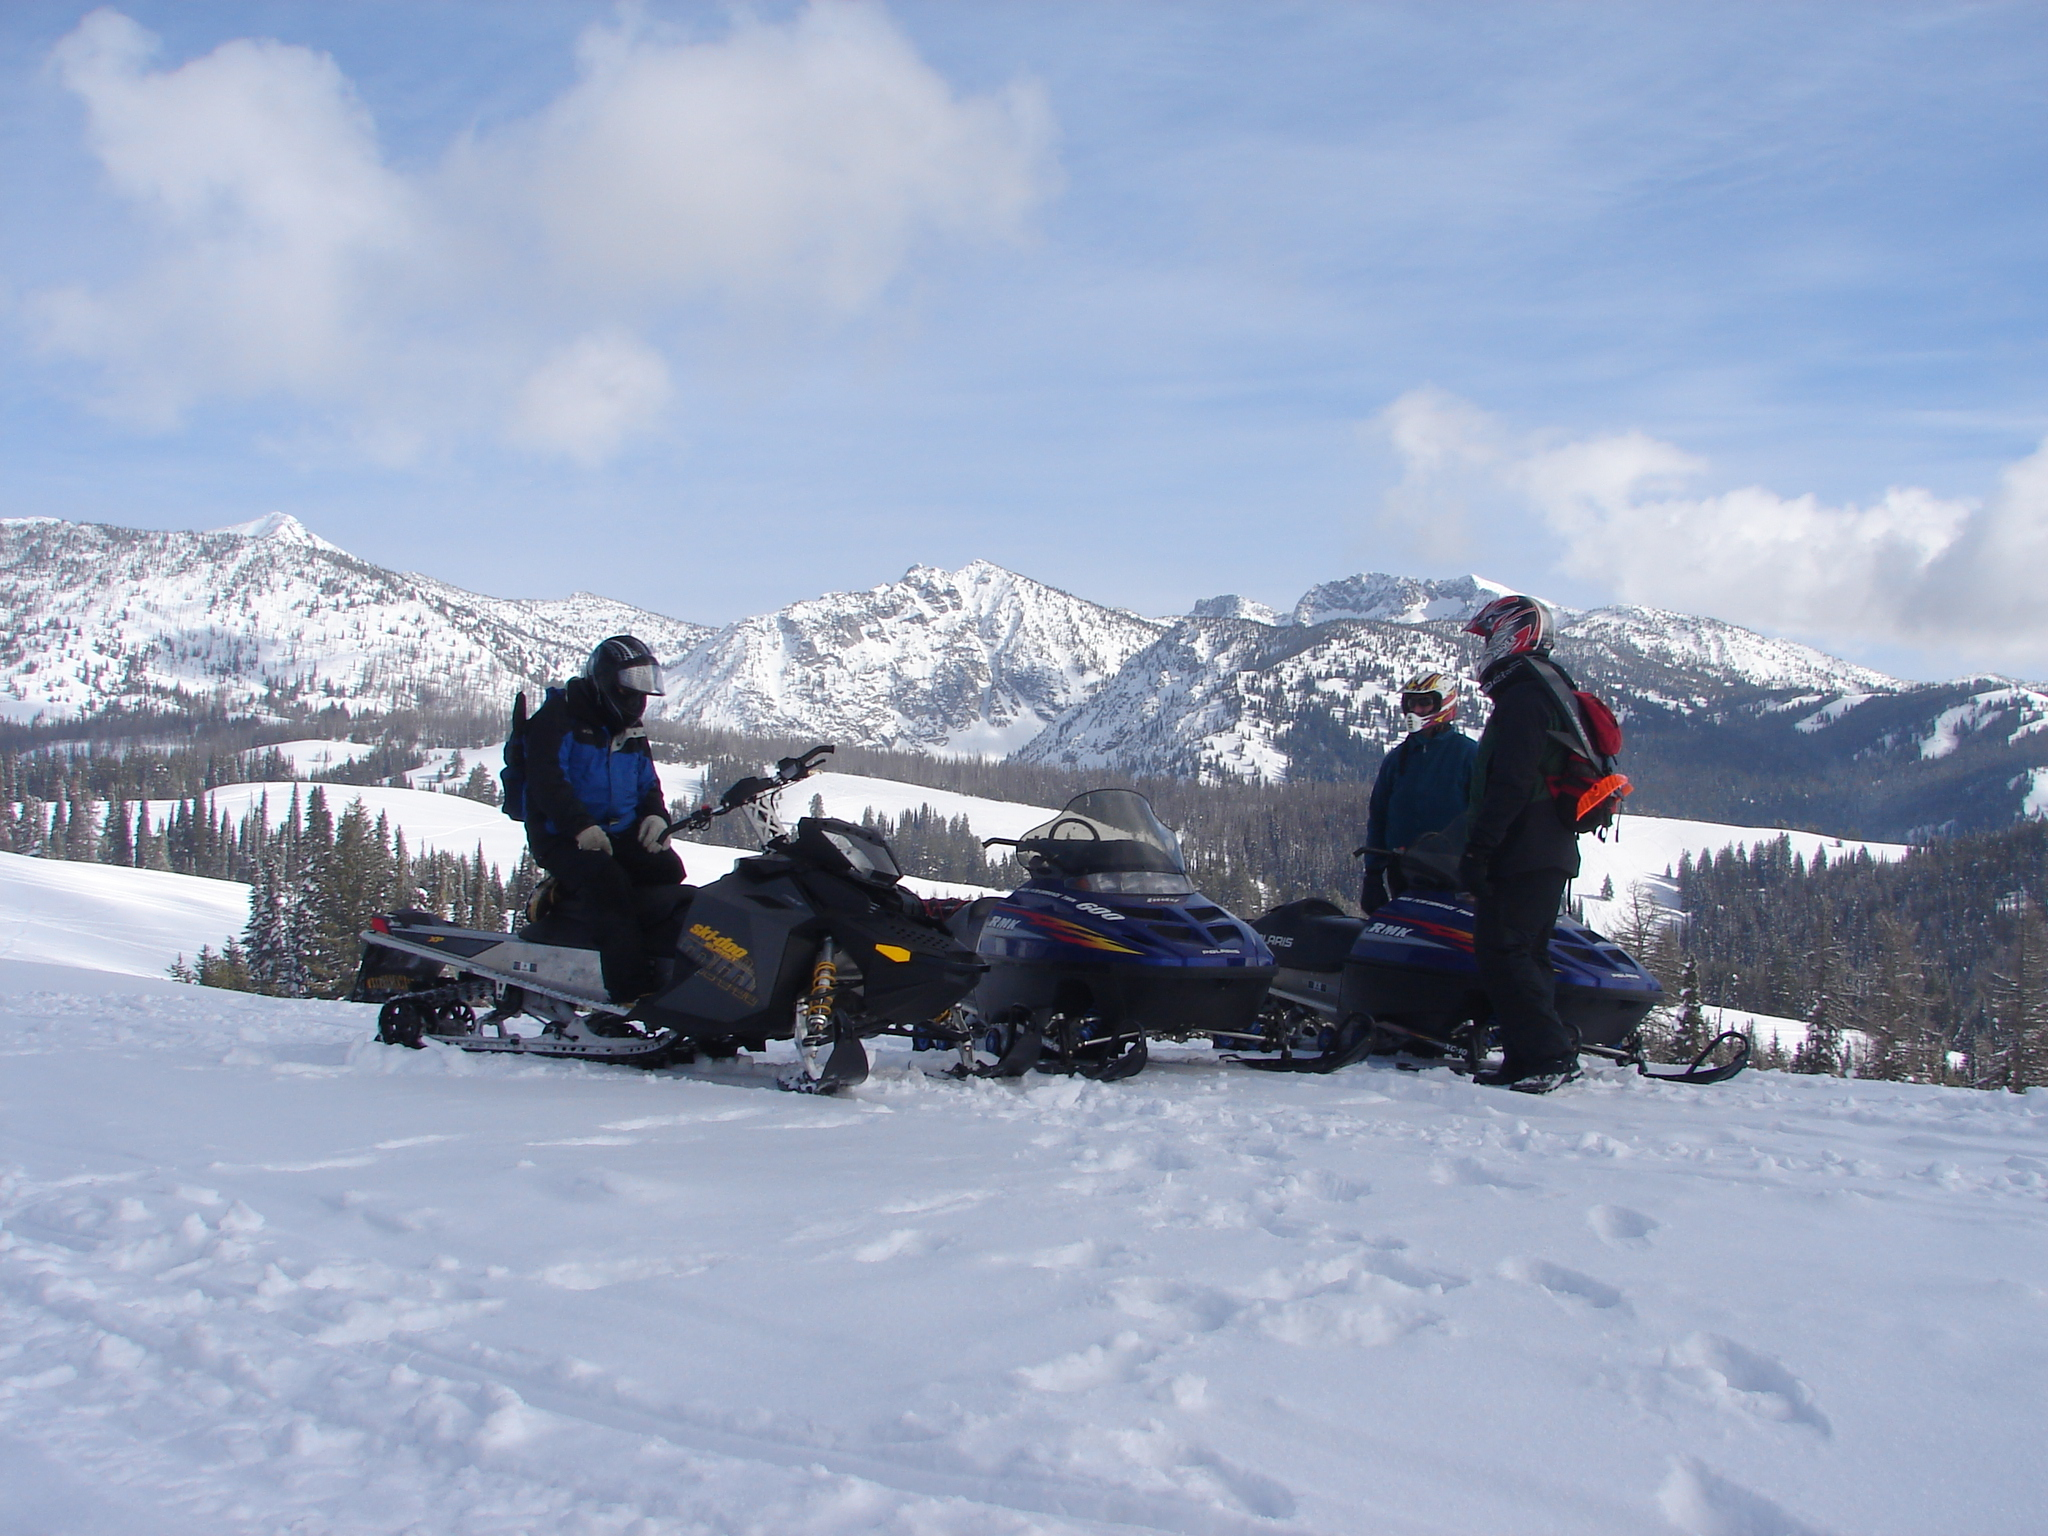 3 snowmobile riders visting with snowy mountains in background